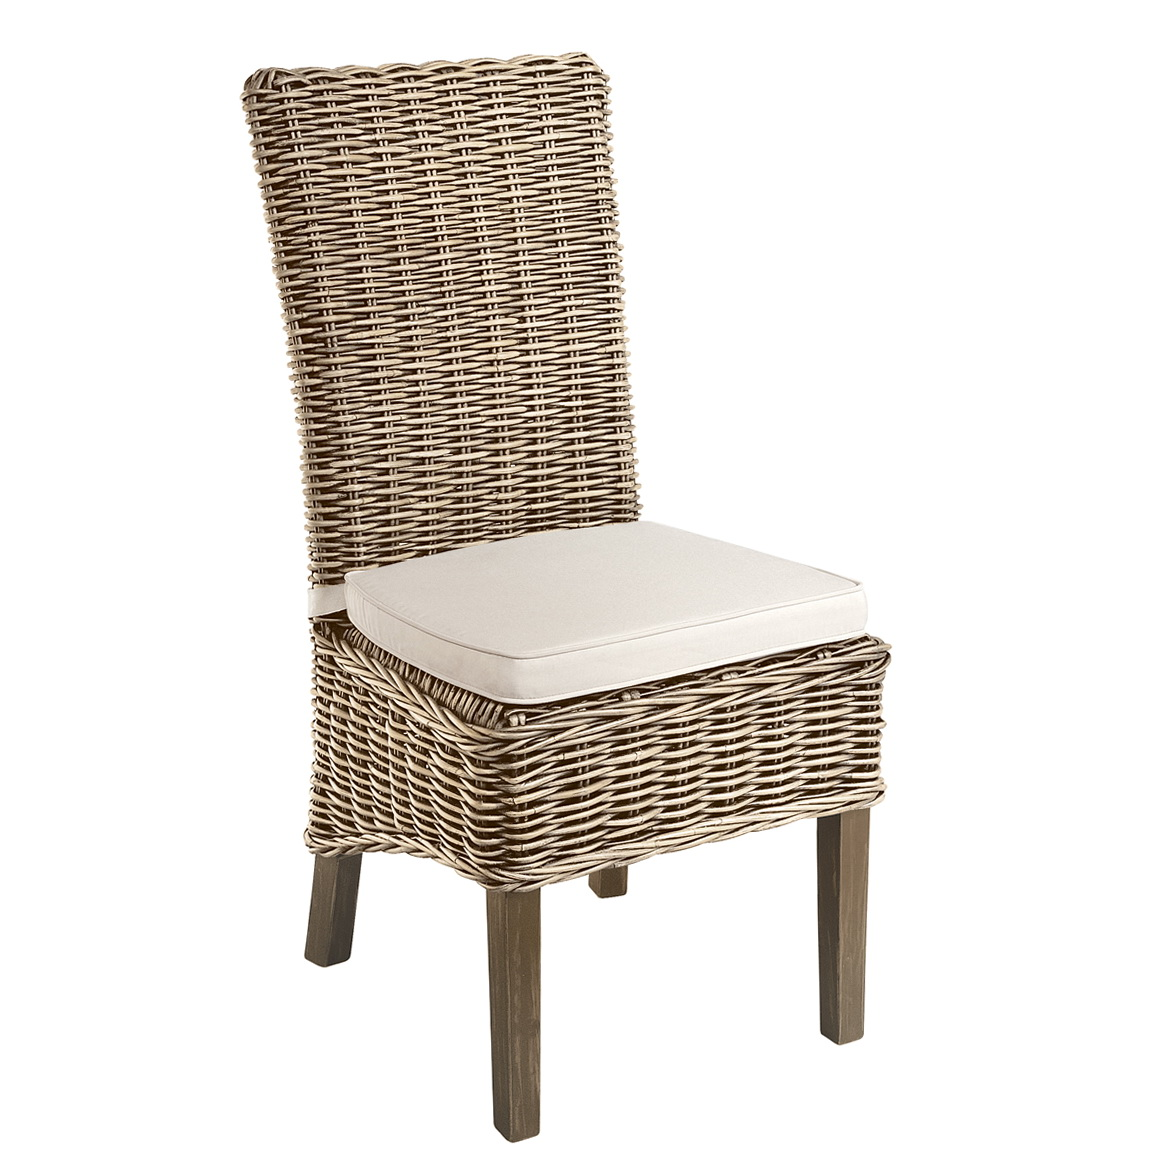 cushions for wicker chairs handicap lift chair recliner rattan furniture uk home design ideas